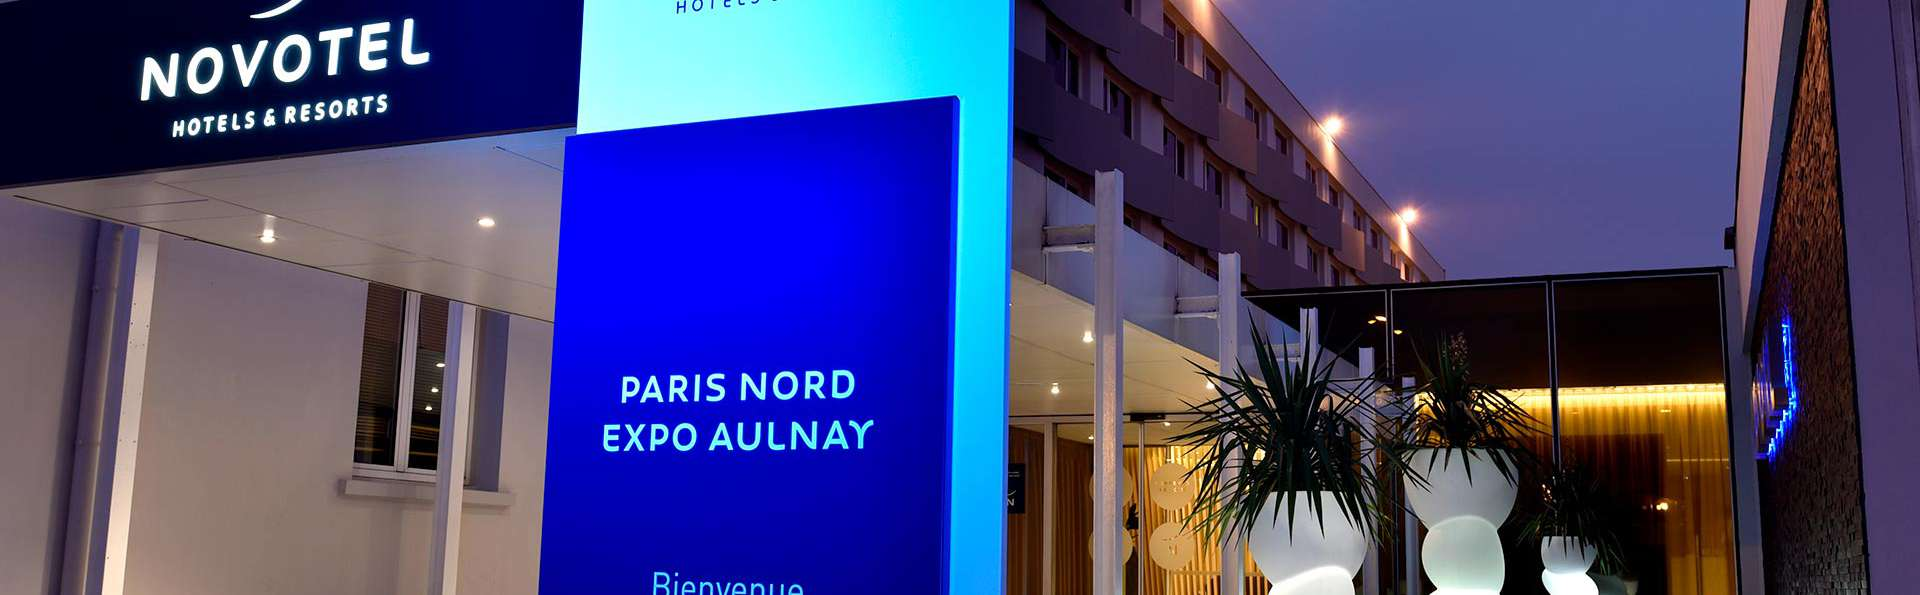 Novotel Paris Nord Expo Aulnay - Edit_Entrance.jpg